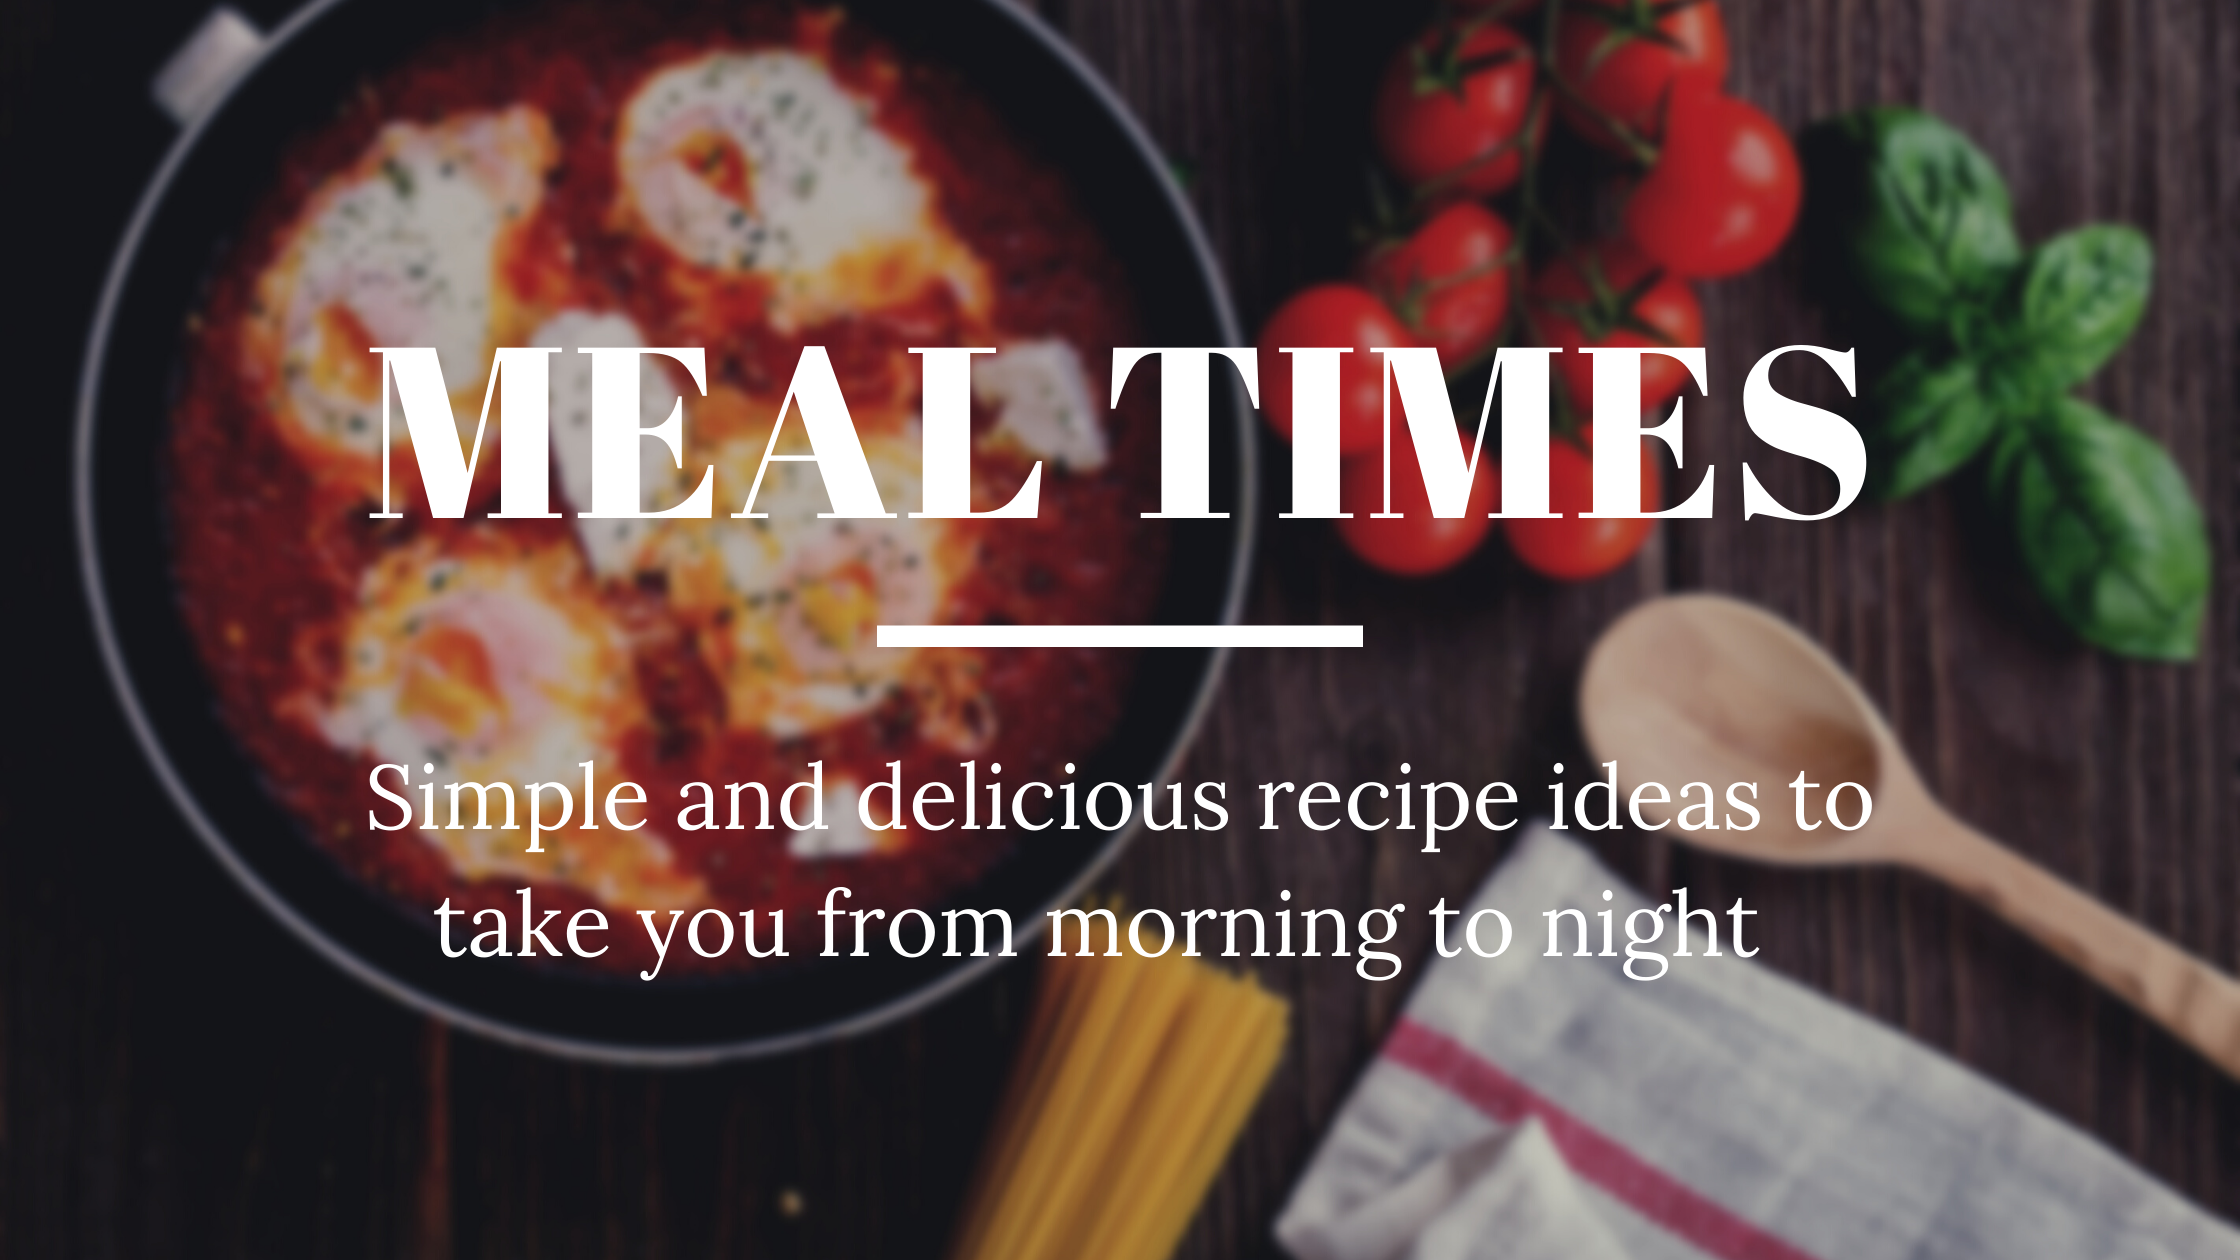 Meal times - simple and delicious recipe ideas to take you from morning to night